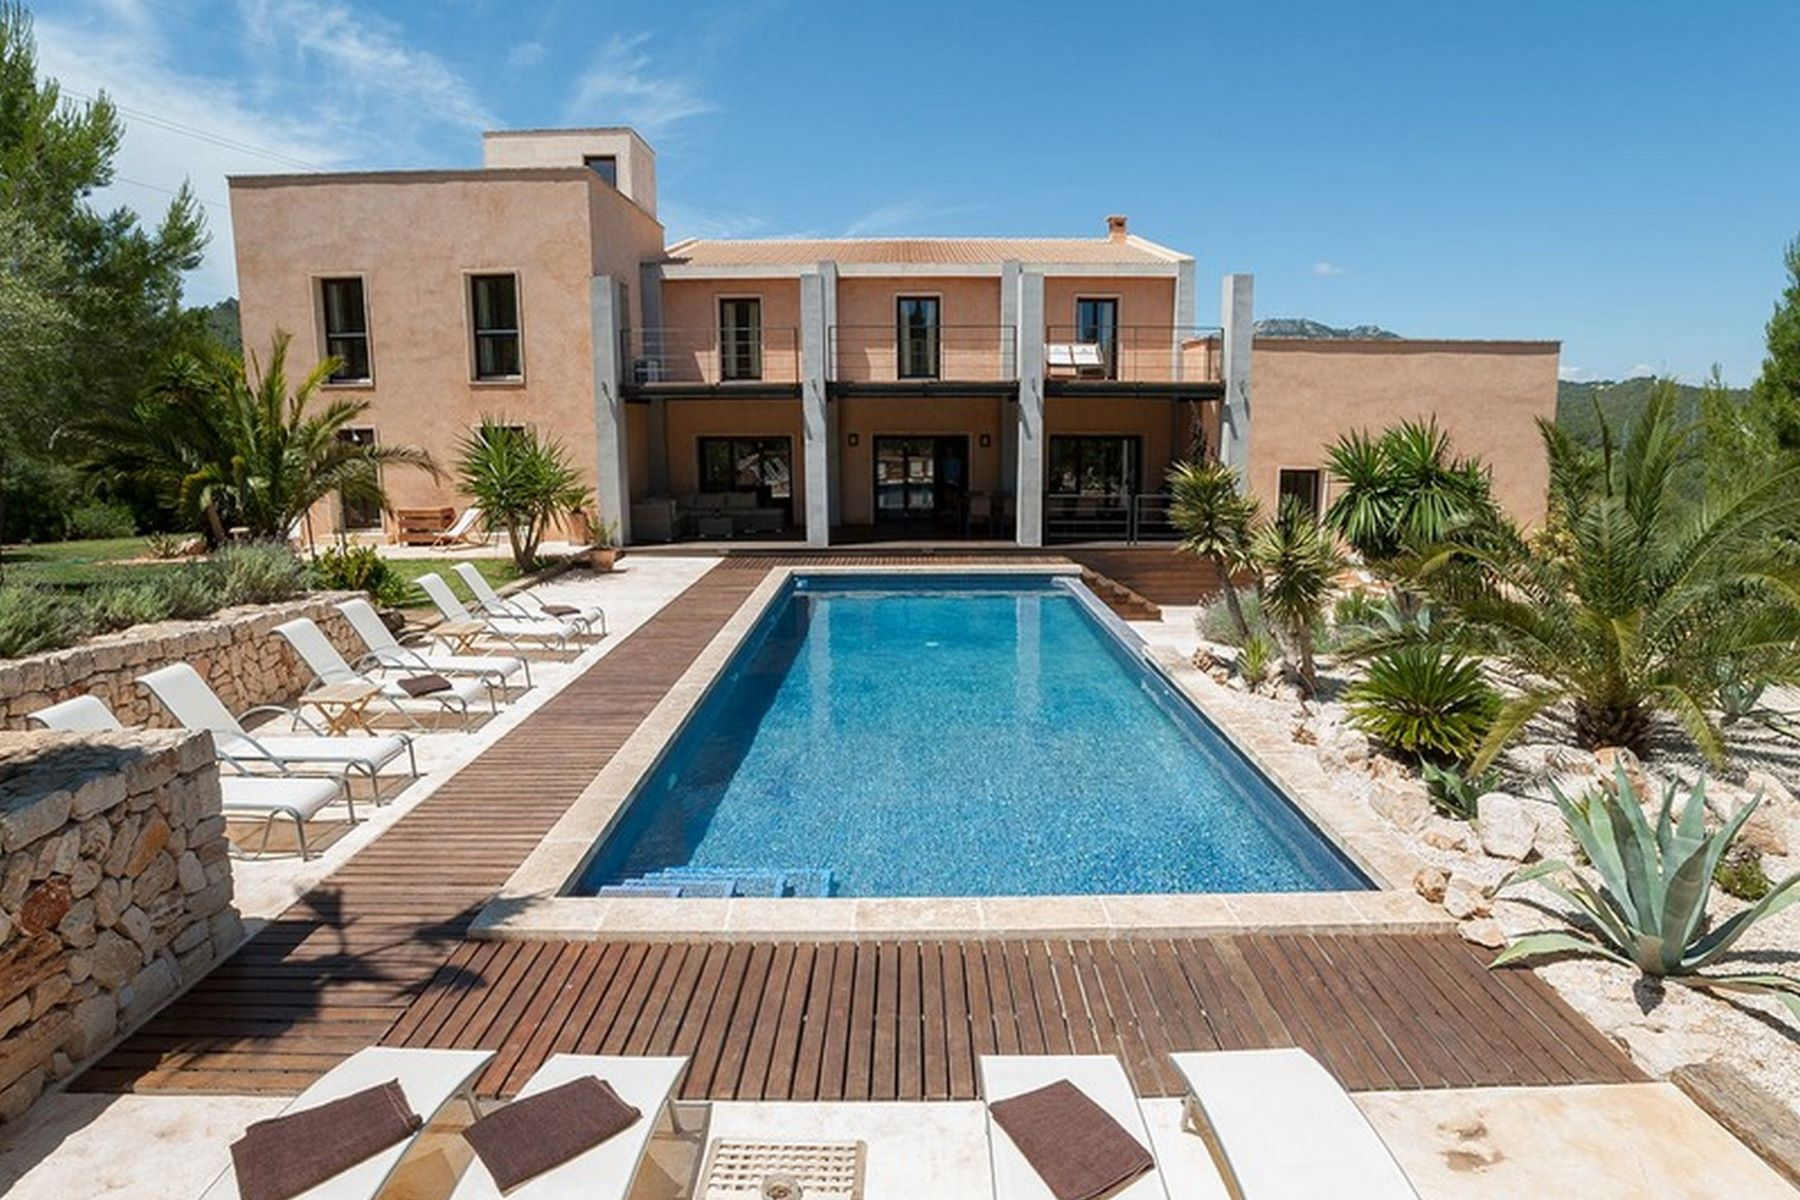 Single Family Home for Sale at Newly built Villa in Porto Colom Porto Colom, Mallorca, 07670 Spain